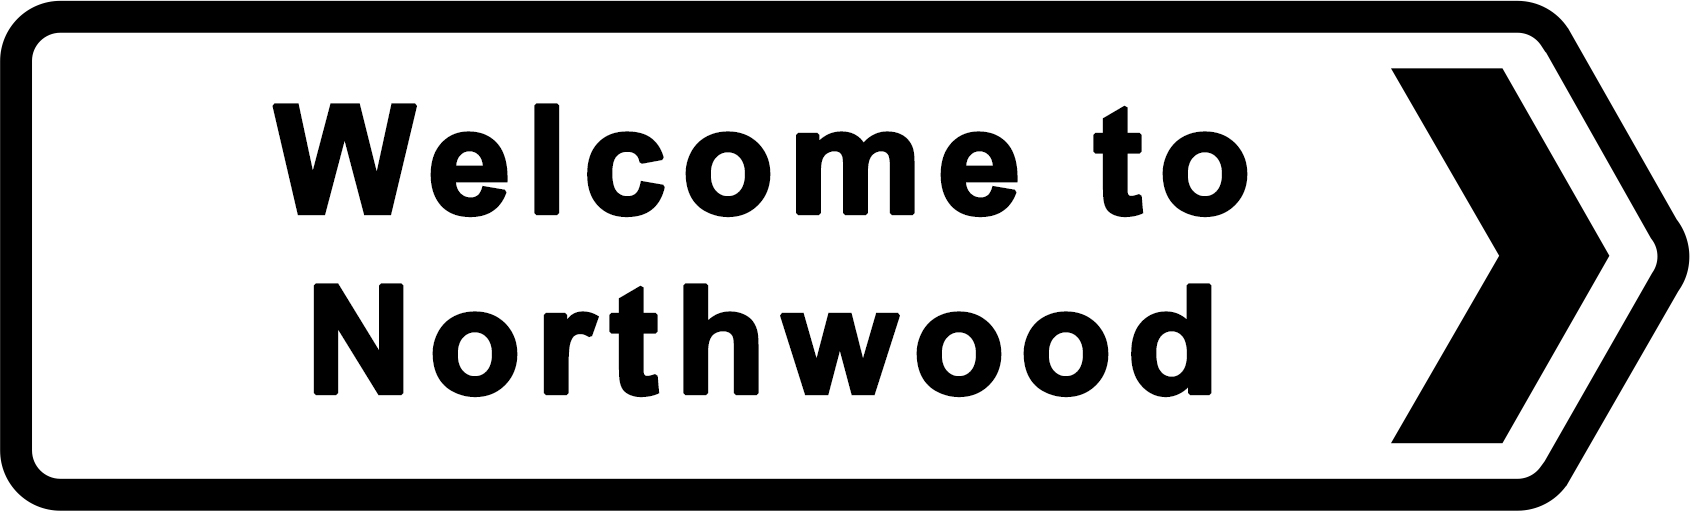 Welcome to Northwood College - Cheap Driving Schools Lessons in Northwood, HA6, London borough of Hillingdon, Greater London